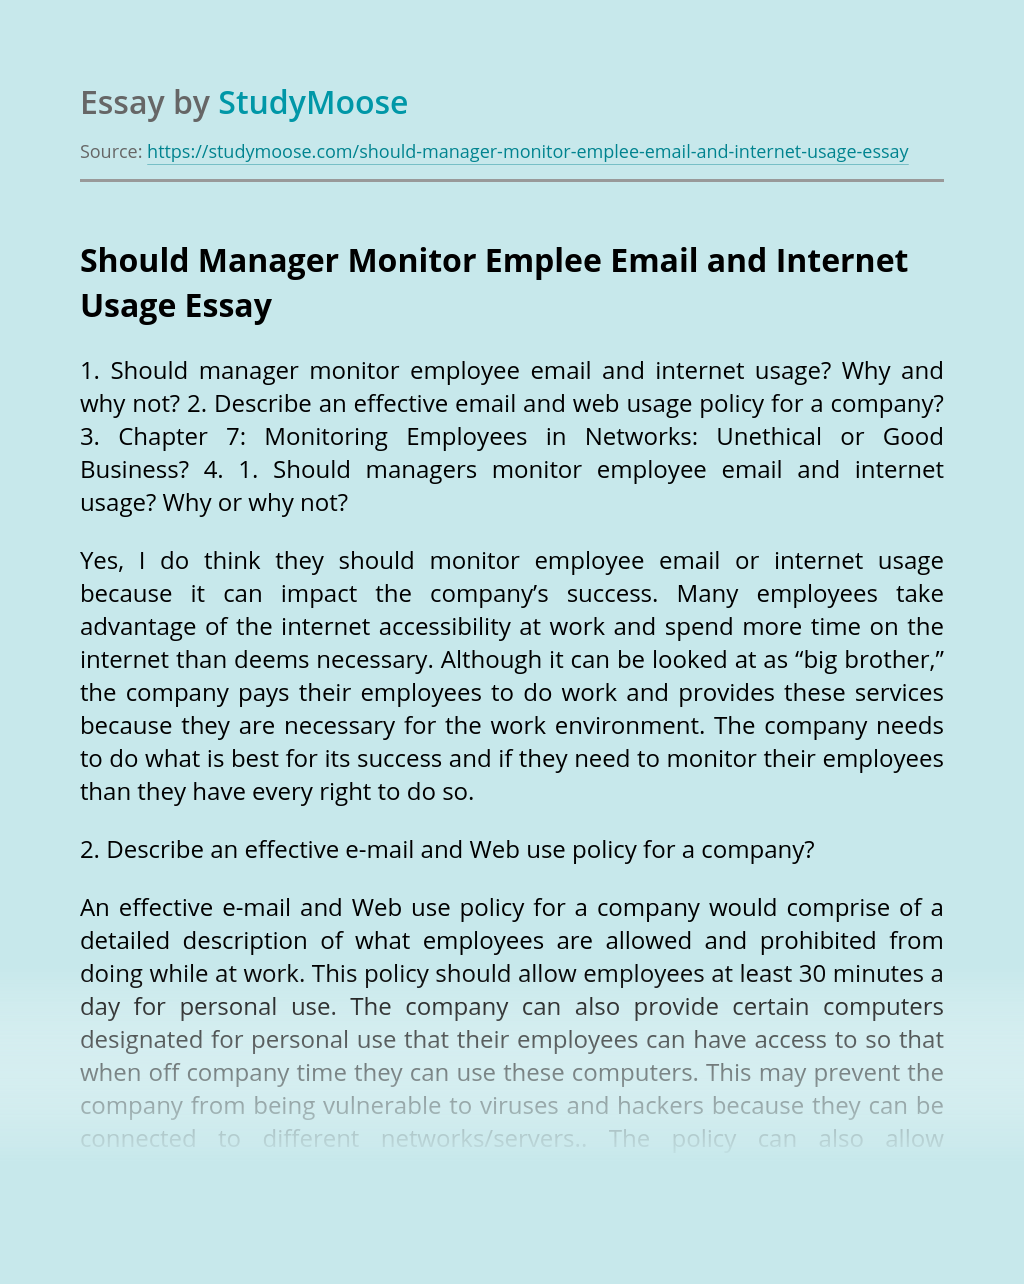 Should Manager Monitor Emplee Email and Internet Usage